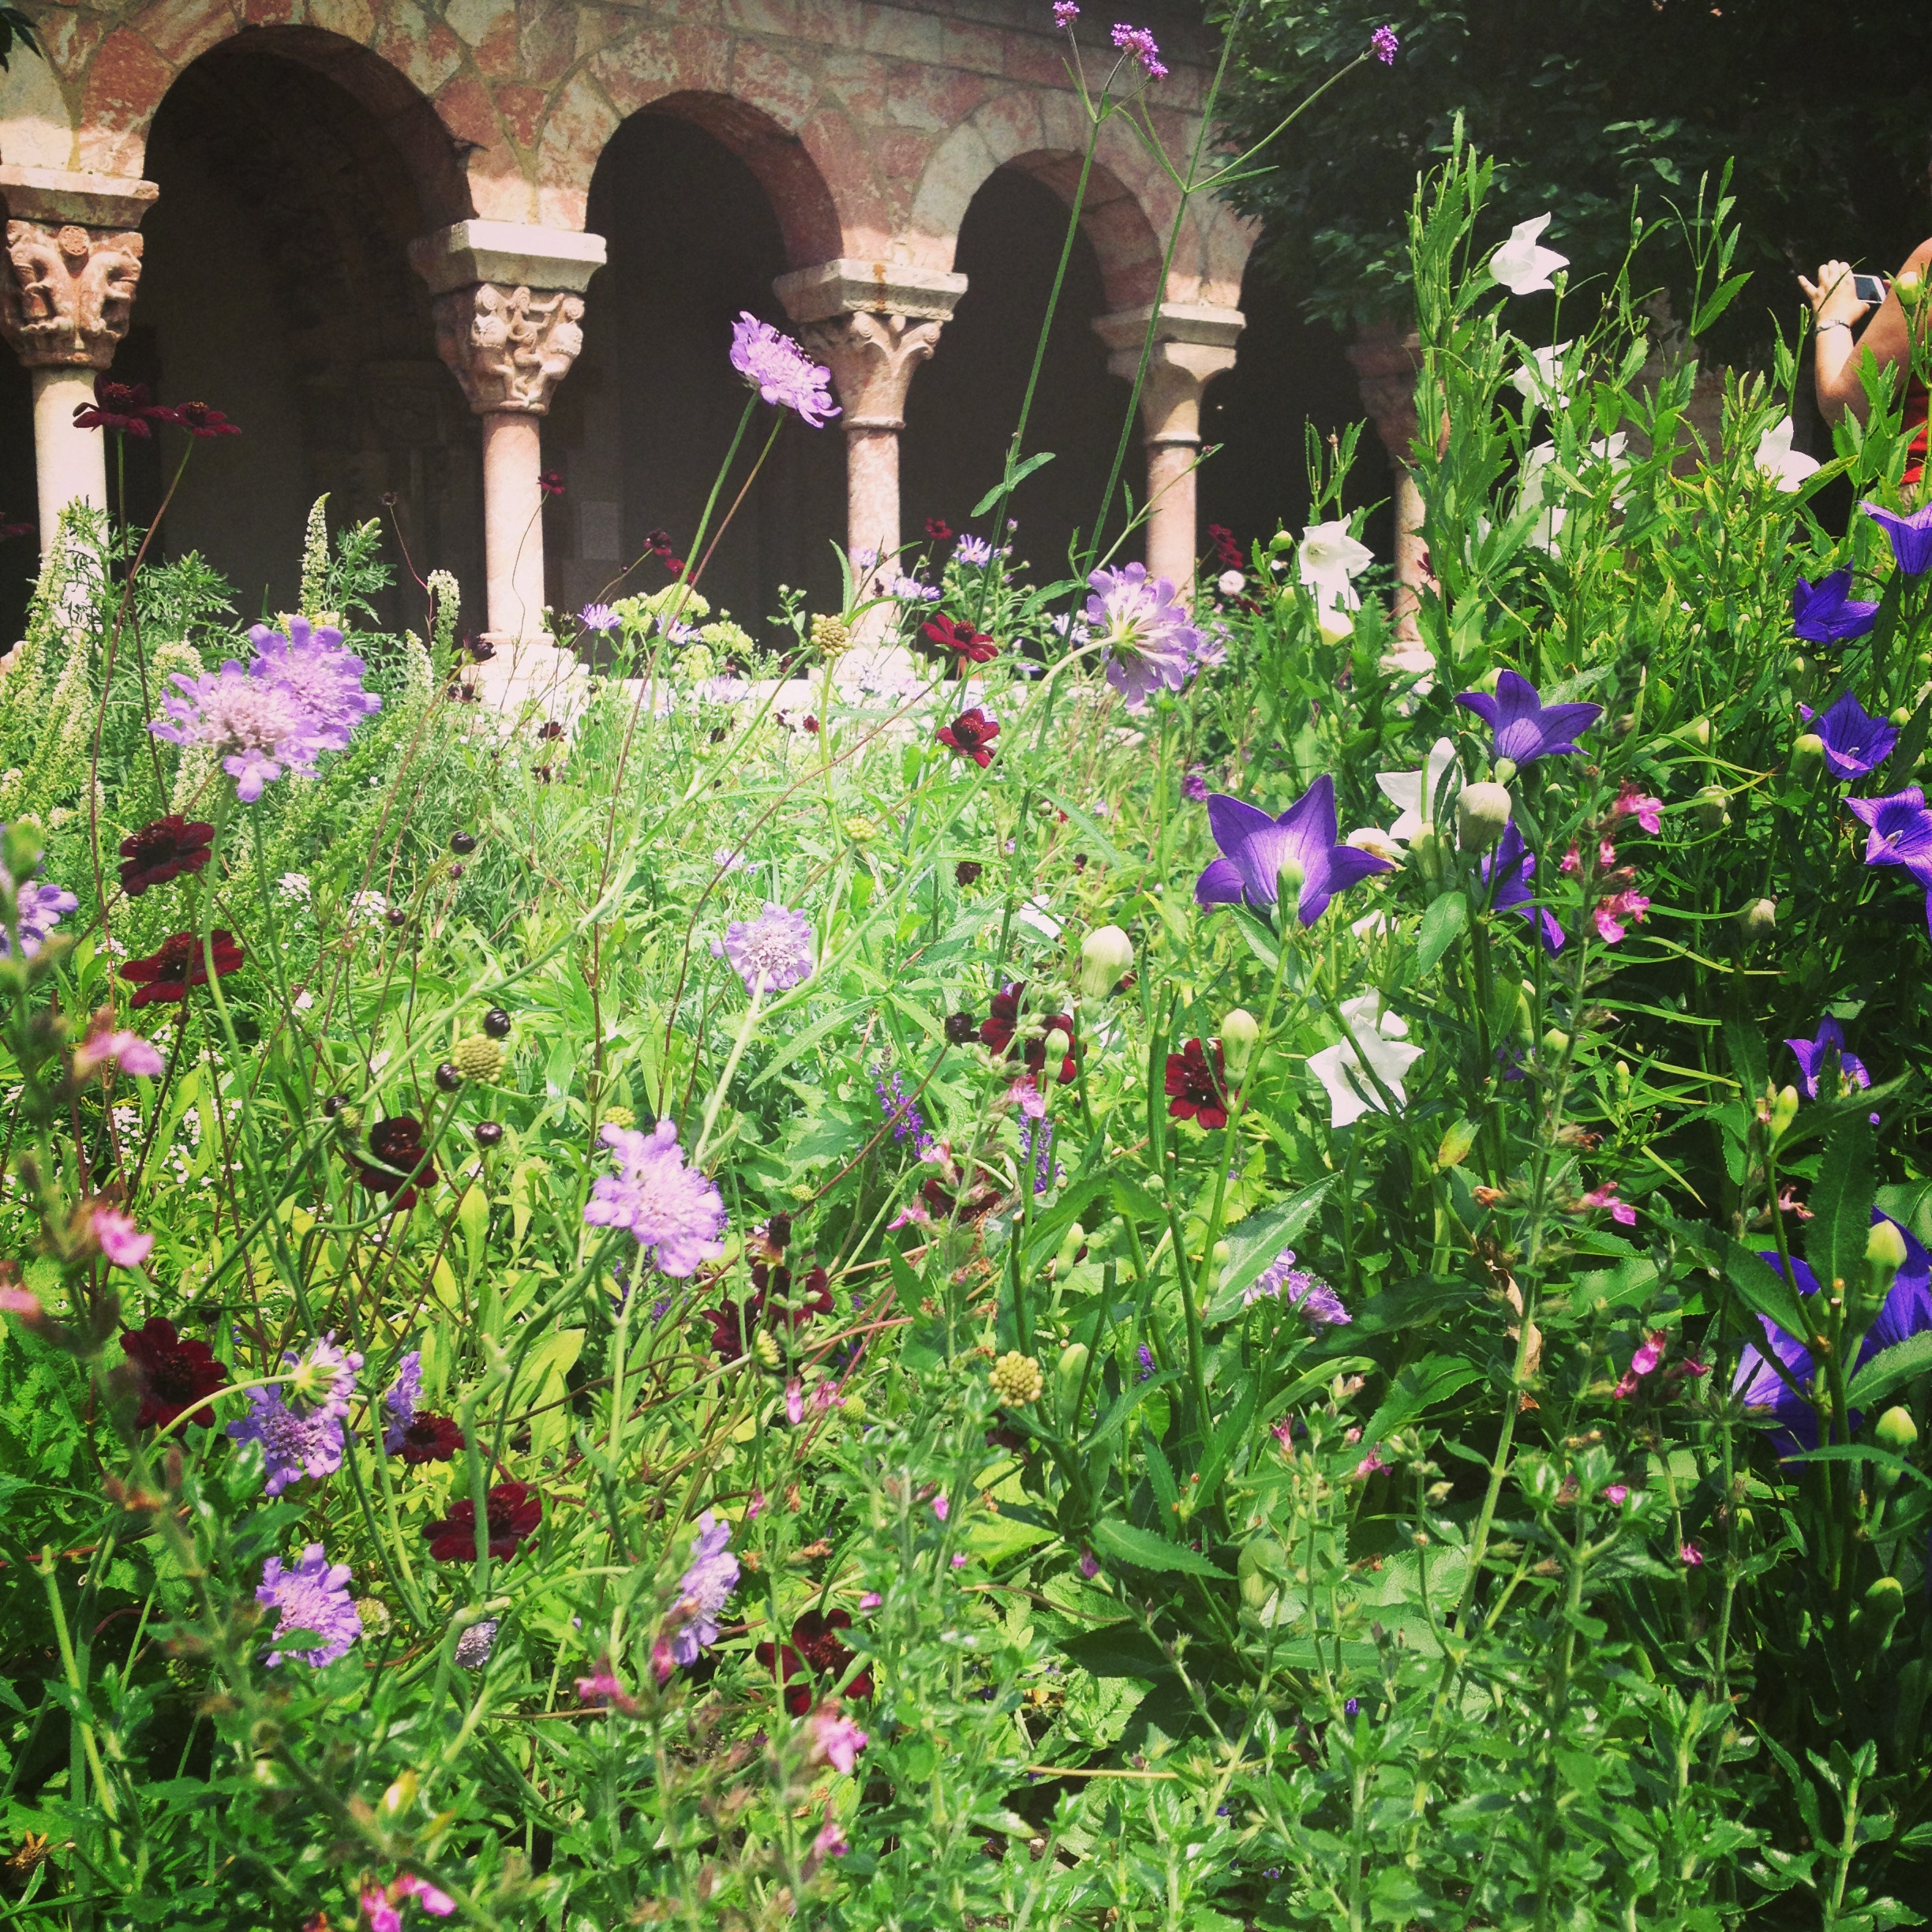 ICMA has been headquartered at The Met Cloisters since 1969.